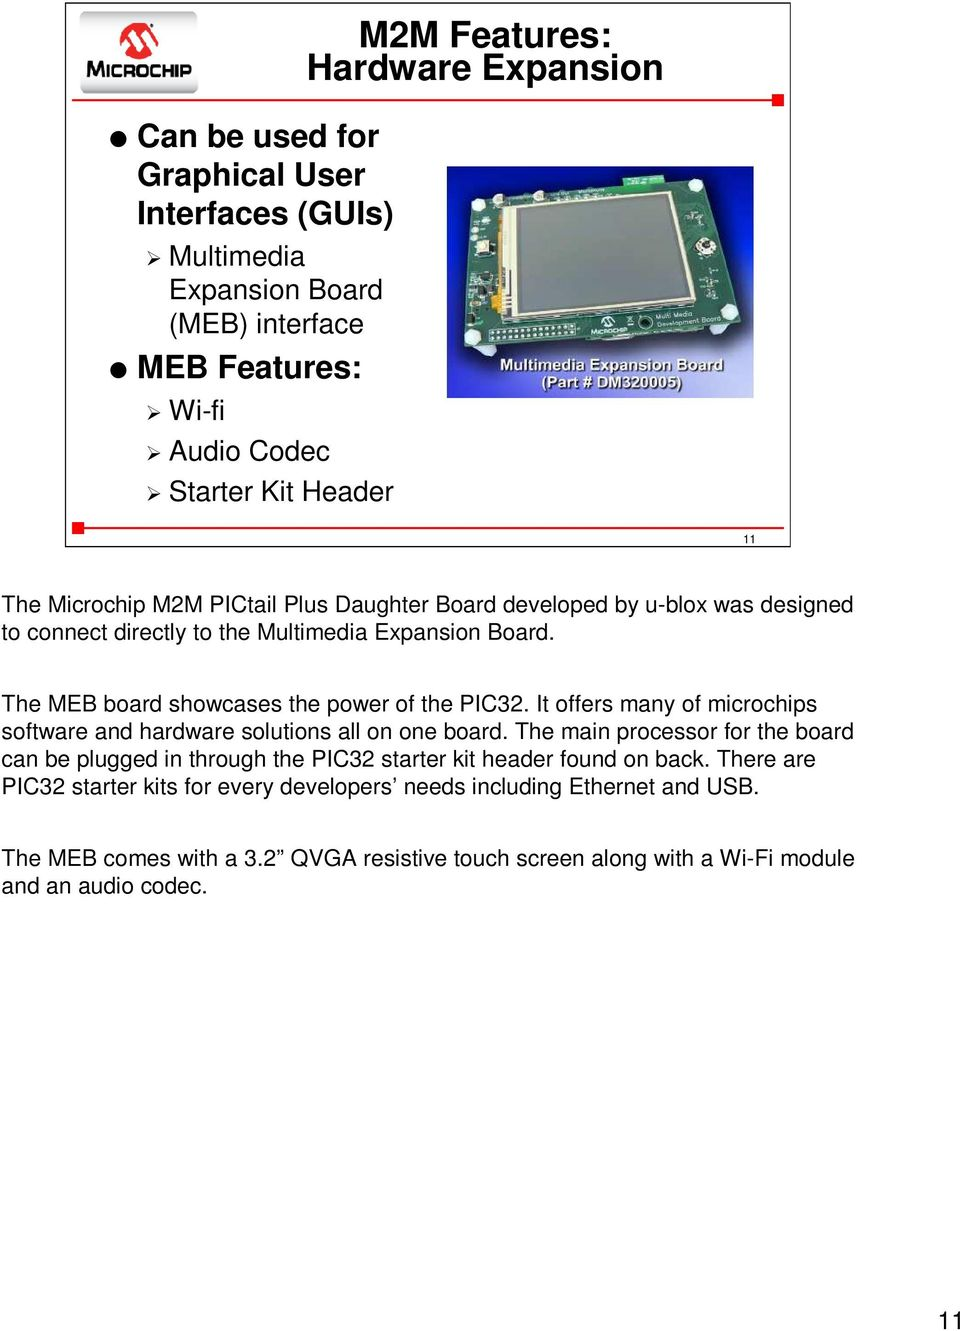 It offers many of microchips software and hardware solutions all on one board. The main processor for the board can be plugged in through the PIC32 starter kit header found on back.